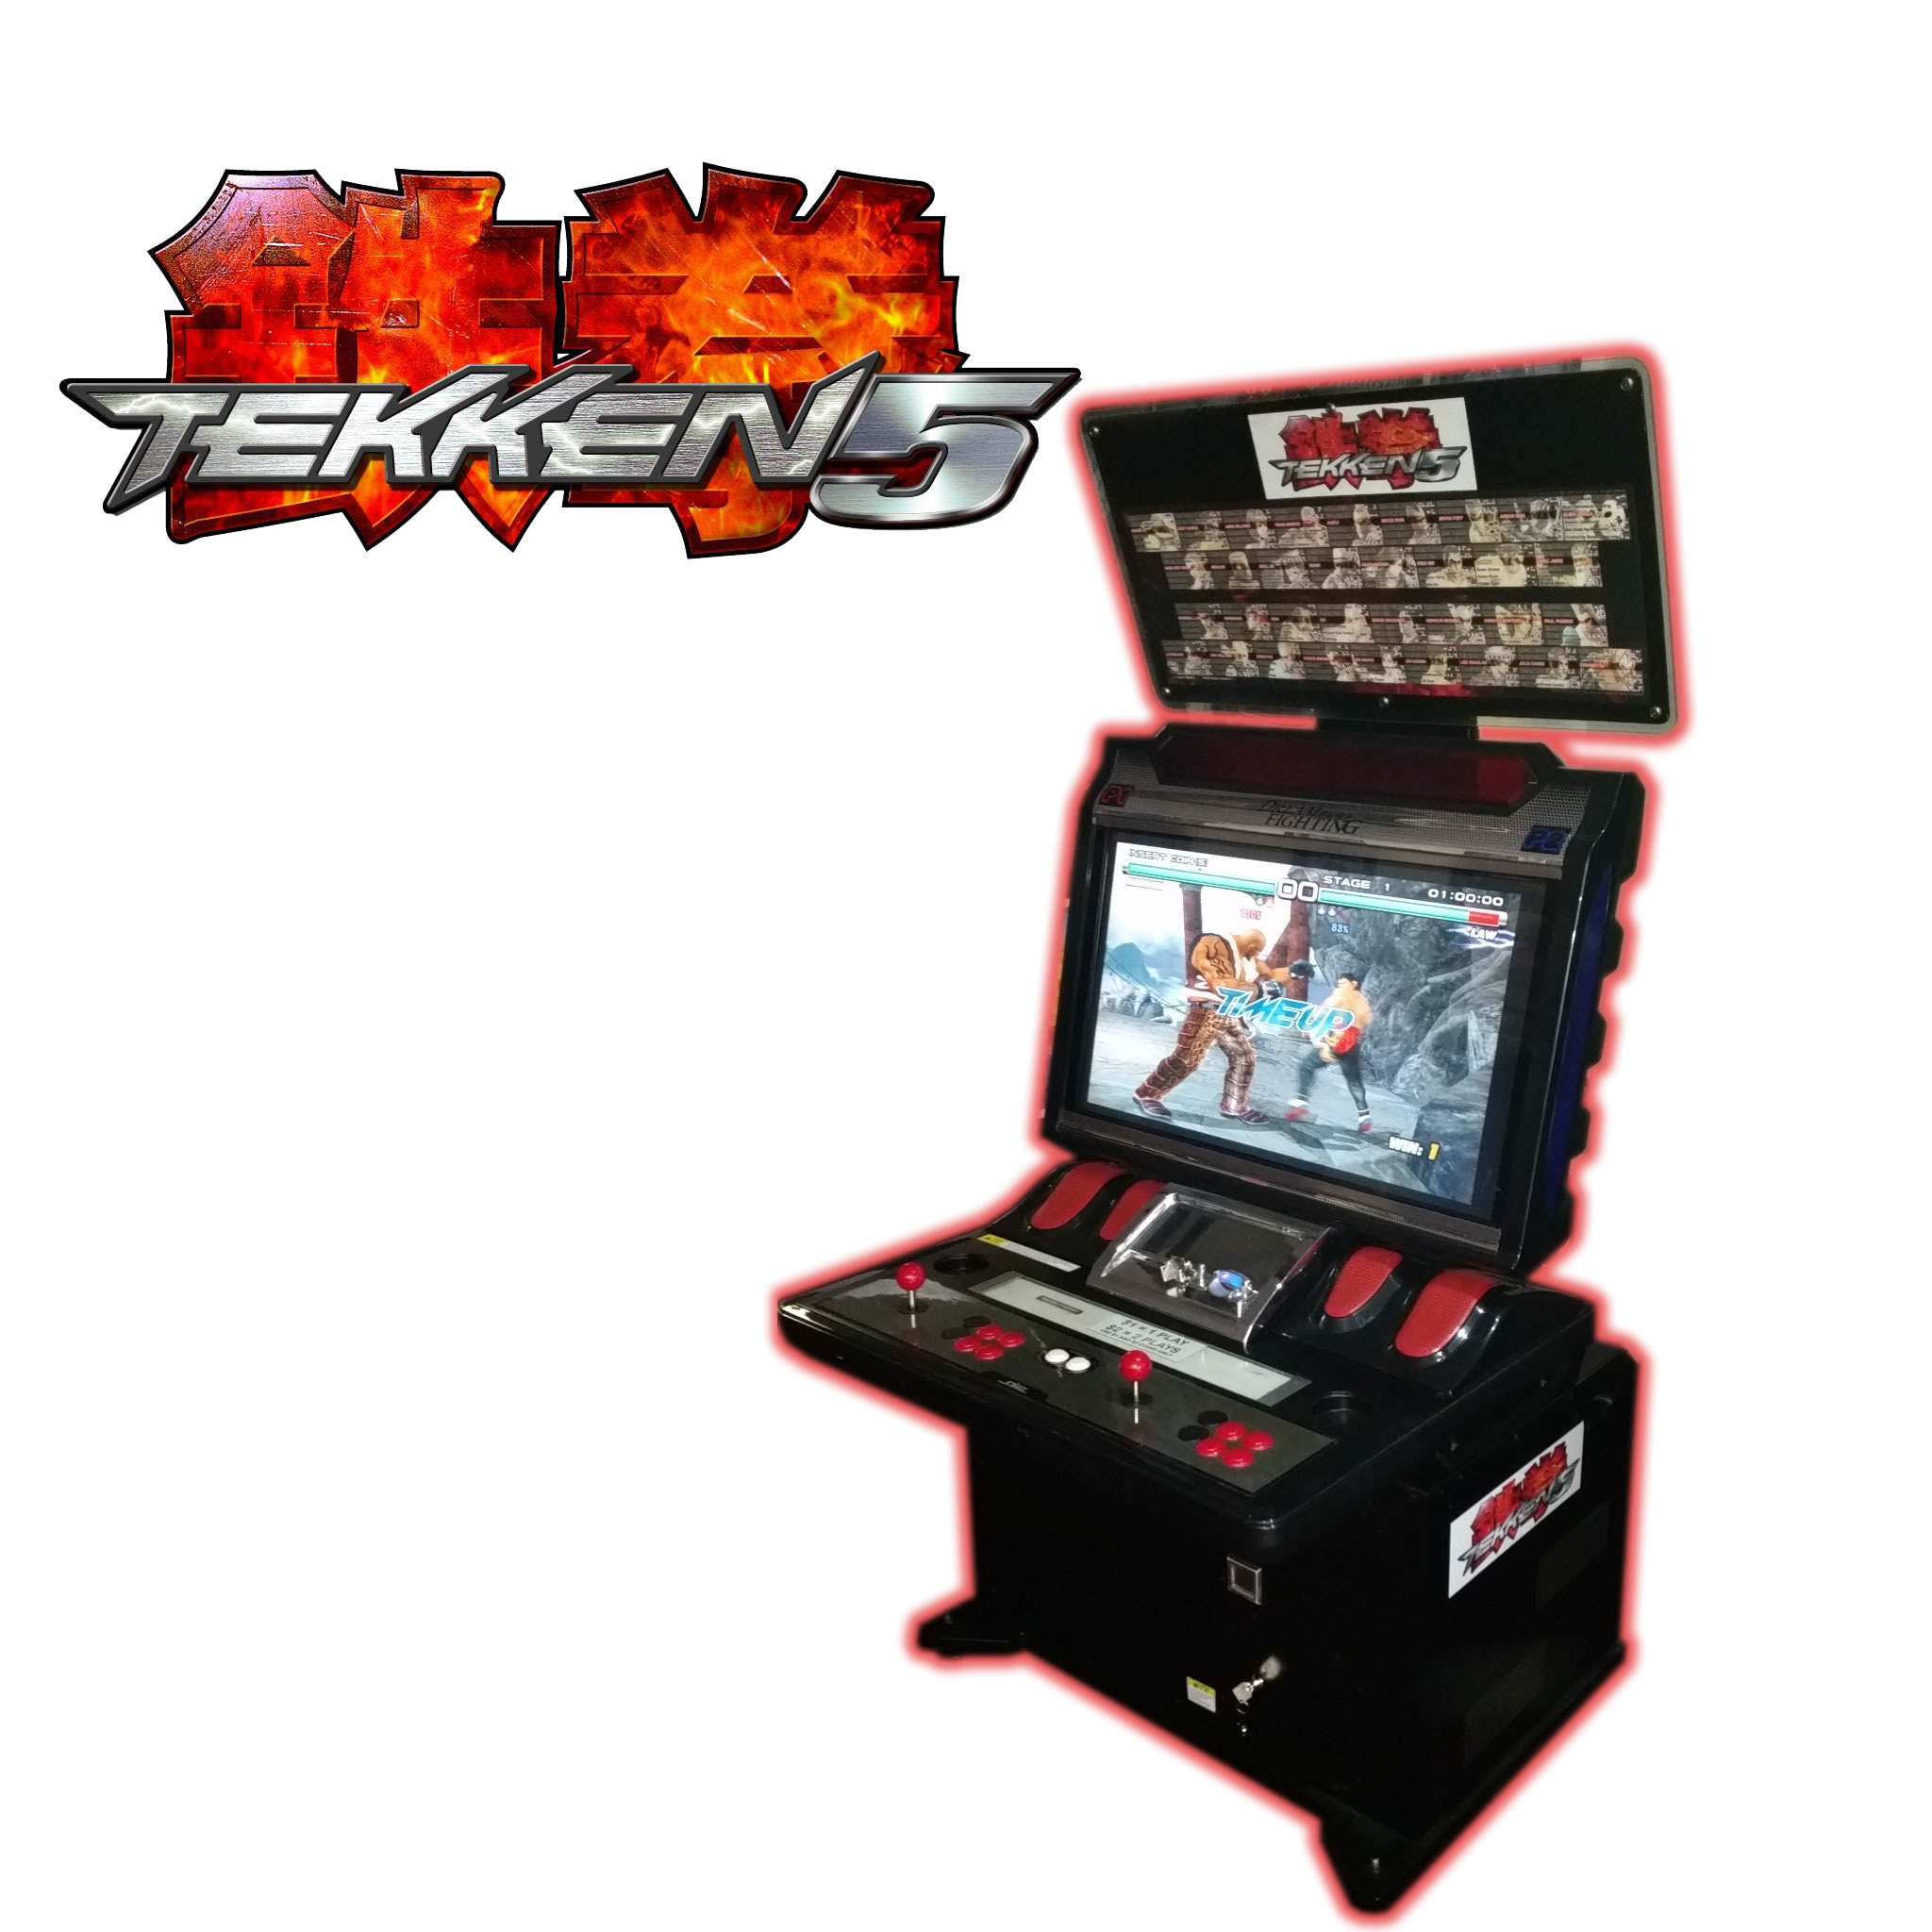 Tekken 5 Arcade Classics Australia Arcade Machines And